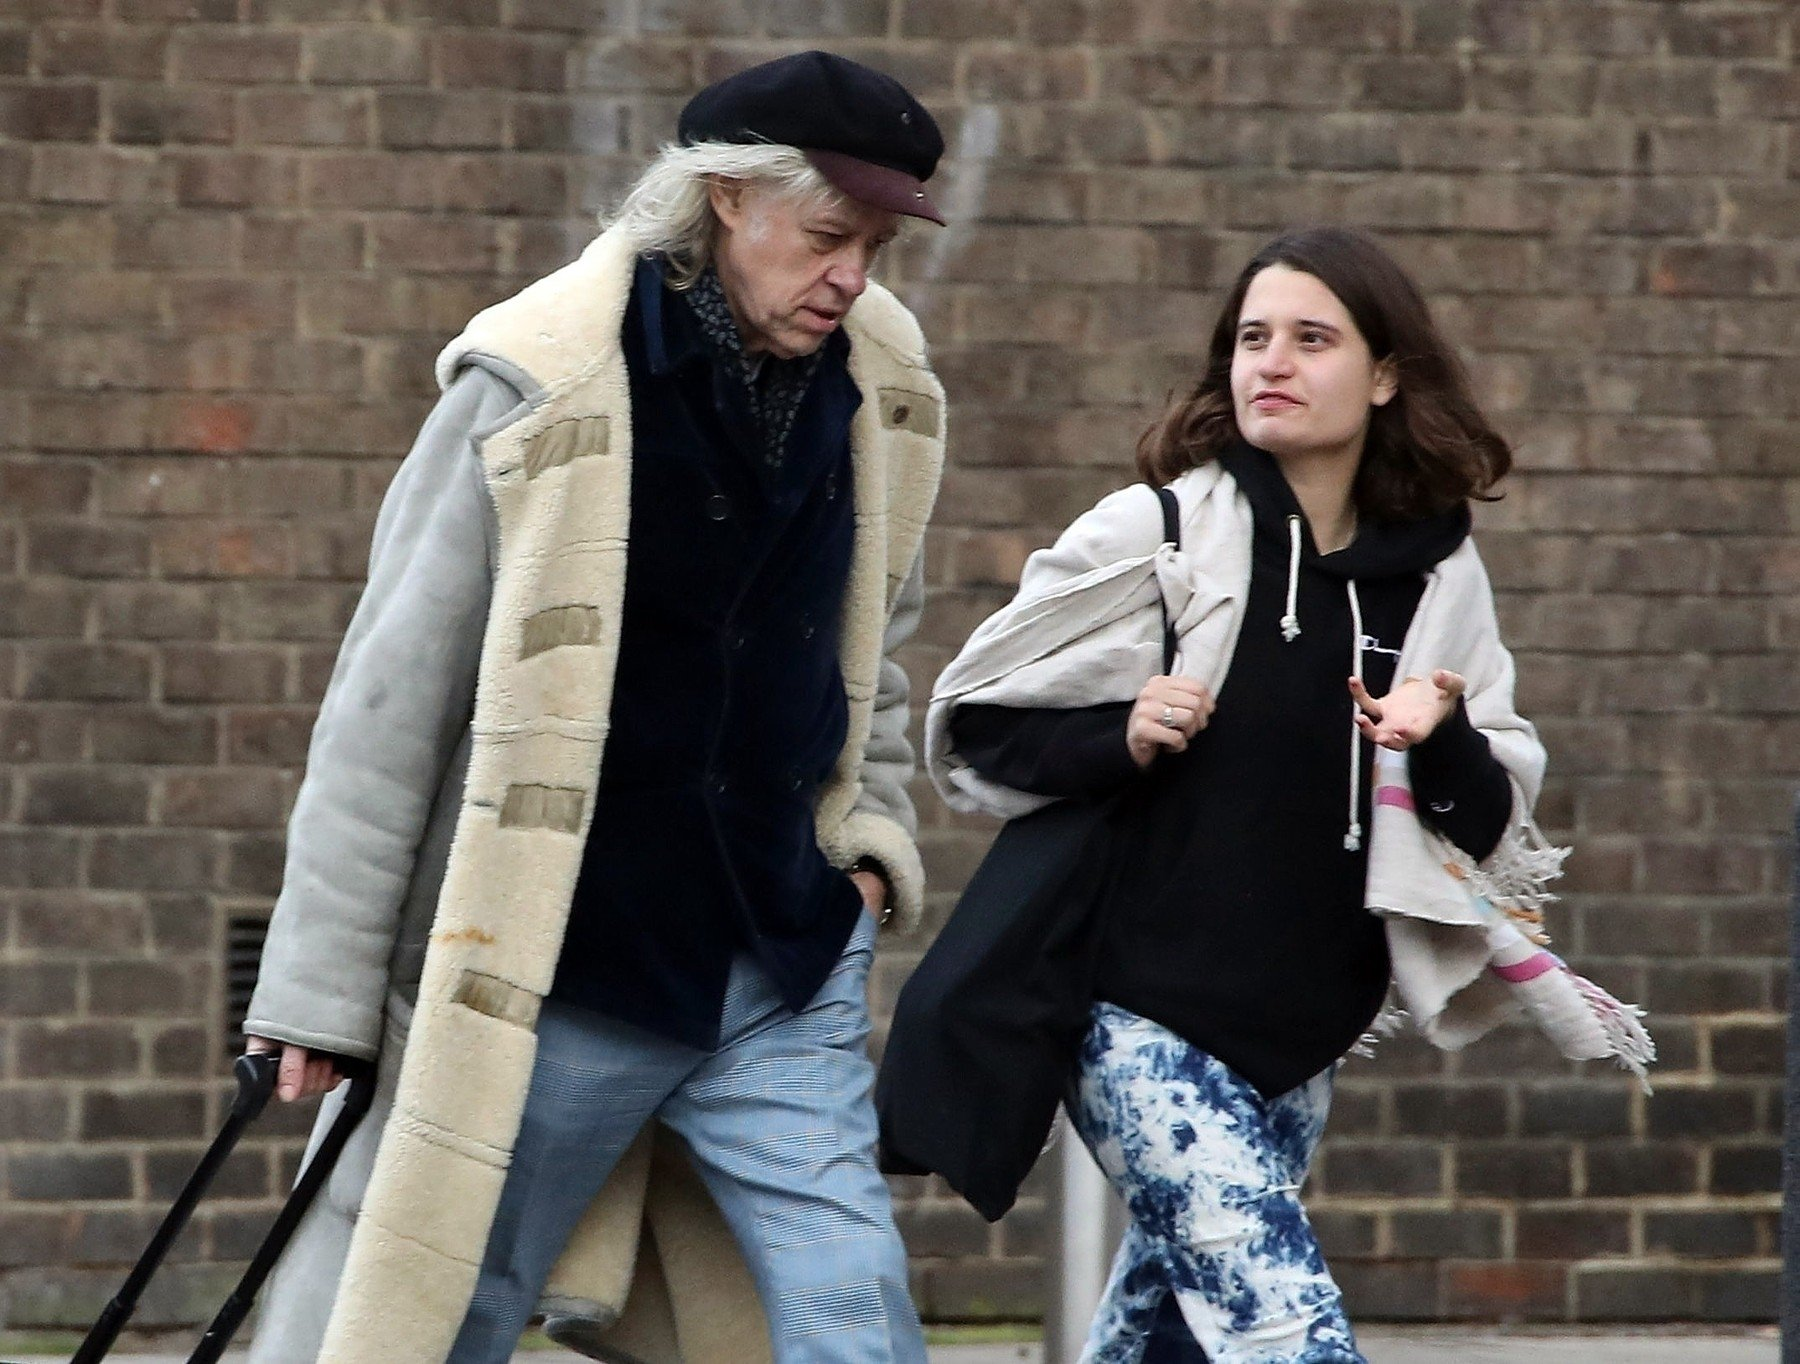 BGUK_1478303 - London, UNITED KINGDOM  - *EXCLUSIVE*  - WEB MUST CALL FOR PRICING Sir Bob Geldof dressed appropriately in a fur coat from the winter chill is spotted with daughter Tiger Lily Hutchence out on the Kings Road, Chelsea. Sir Bob has recently announced that he is undergoing an exciting project by touring Australia in March as part of a speaking tour.  Late INXS frontman Michael Hutchence's daughter Tiger Lily has also been in the news last year after reports claimed she is dating the Aussie rocker Nicholas Allbrook. *PICTURES TAKEN ON 06/02/2019*  Pictured: Bob Geldof and Tiger Lily Hutchence  BACKGRID UK 8 FEBRUARY 2019, Image: 412690601, License: Rights-managed, Restrictions: , Model Release: no, Credit line: Profimedia, Backgrid UK